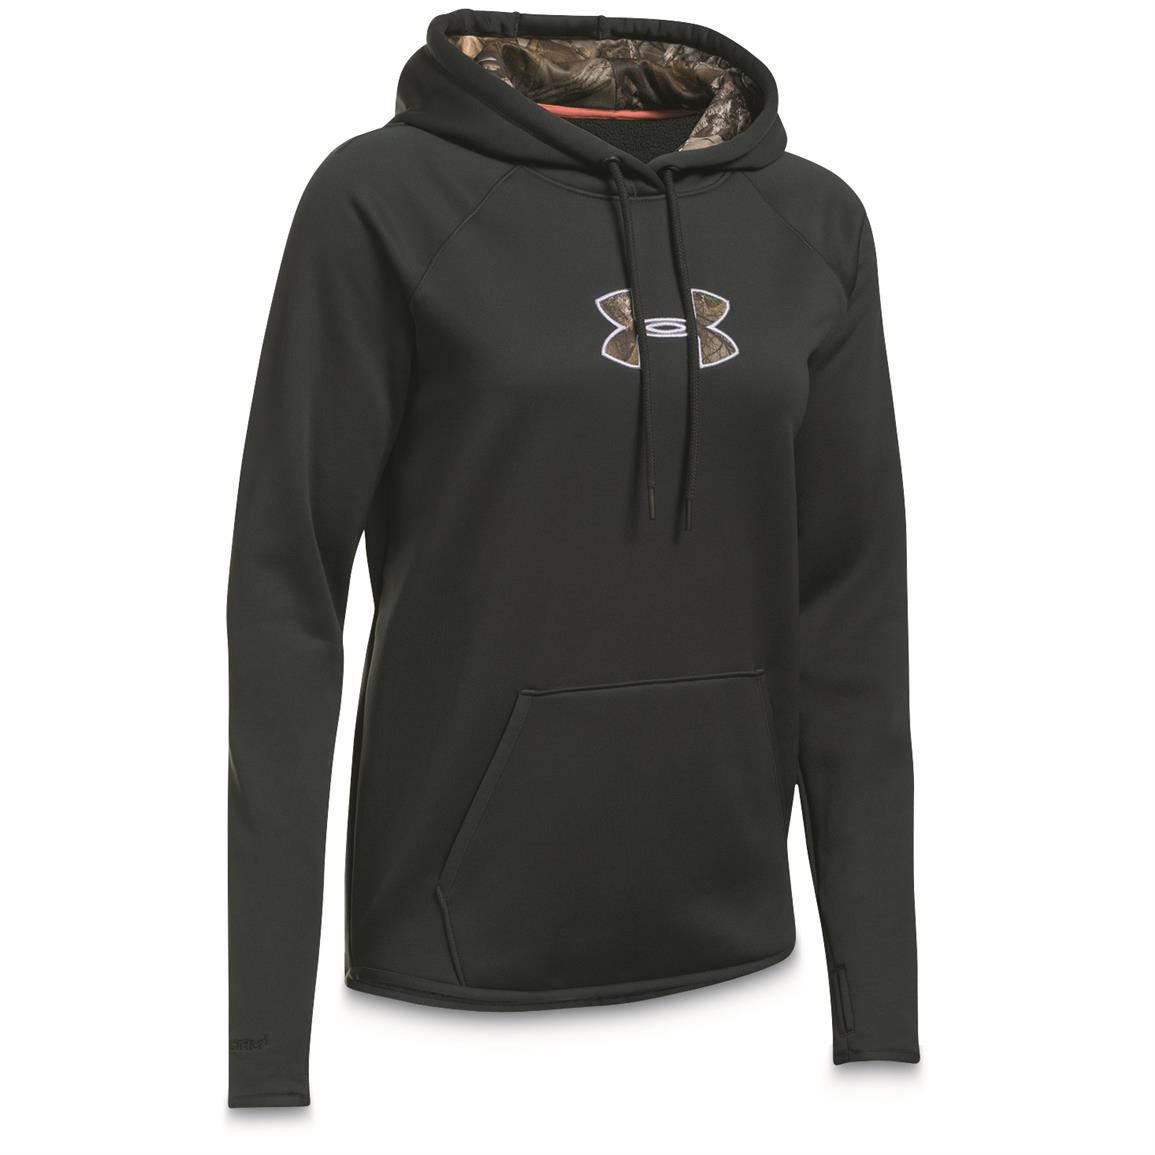 Under Armour Women's Icon Caliber Hoodie, Anthracite / Realtree / Lavender